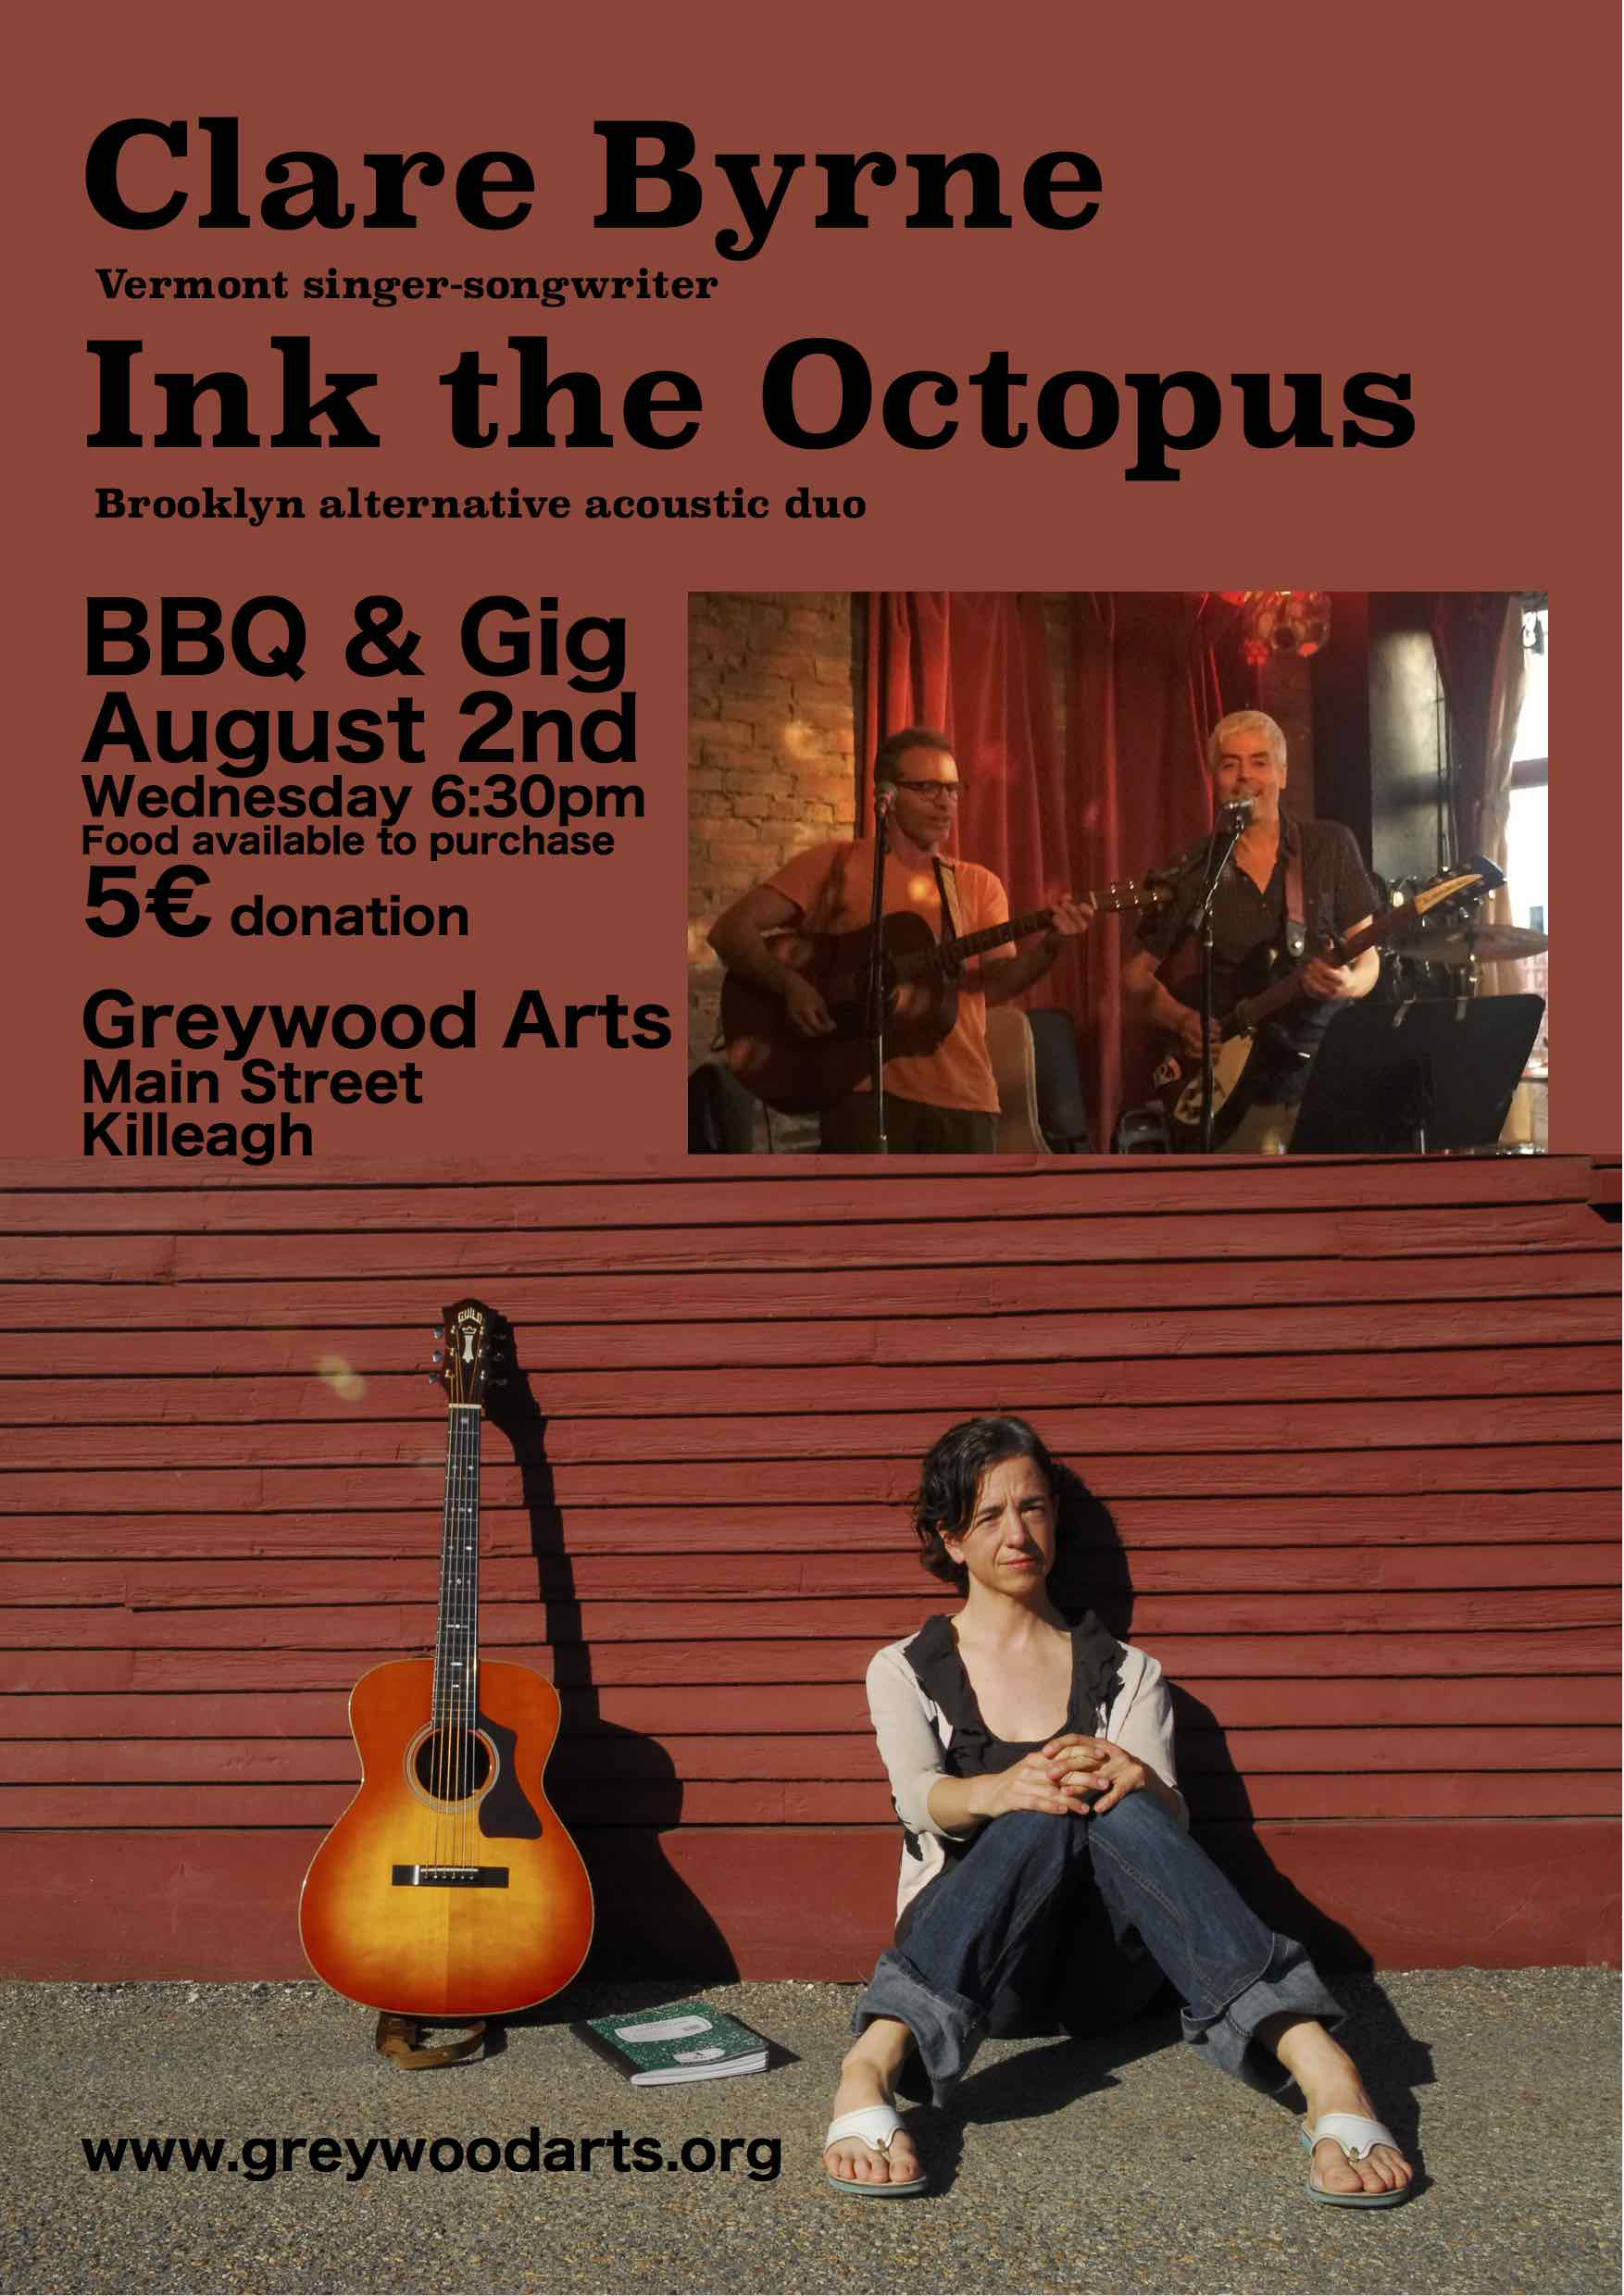 Clare Byrne Ink the Octopus Poster Web